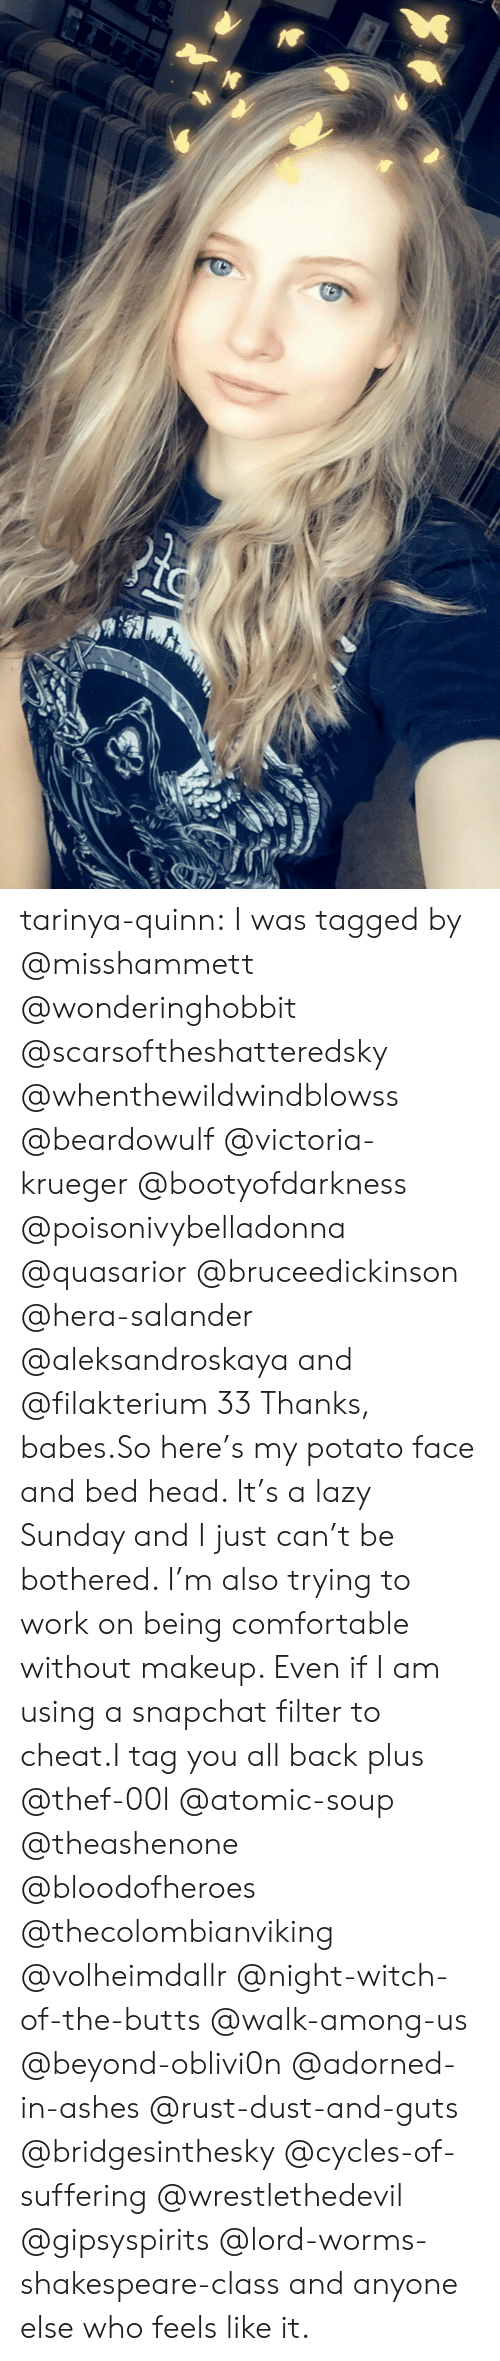 Snapchat Filter: tarinya-quinn:  I was tagged by @misshammett @wonderinghobbit @scarsoftheshatteredsky @whenthewildwindblowss @beardowulf @victoria-krueger @bootyofdarkness @poisonivybelladonna @quasarior @bruceedickinson @hera-salander @aleksandroskaya and @filakterium 33 Thanks, babes.So here's my potato face and bed head. It's a lazy Sunday and I just can't be bothered. I'm also trying to work on being comfortable without makeup. Even if I am using a snapchat filter to cheat.I tag you all back plus @thef-00l @atomic-soup @theashenone @bloodofheroes @thecolombianviking @volheimdallr @night-witch-of-the-butts @walk-among-us @beyond-oblivi0n @adorned-in-ashes @rust-dust-and-guts @bridgesinthesky @cycles-of-suffering @wrestlethedevil @gipsyspirits @lord-worms-shakespeare-class and anyone else who feels like it.